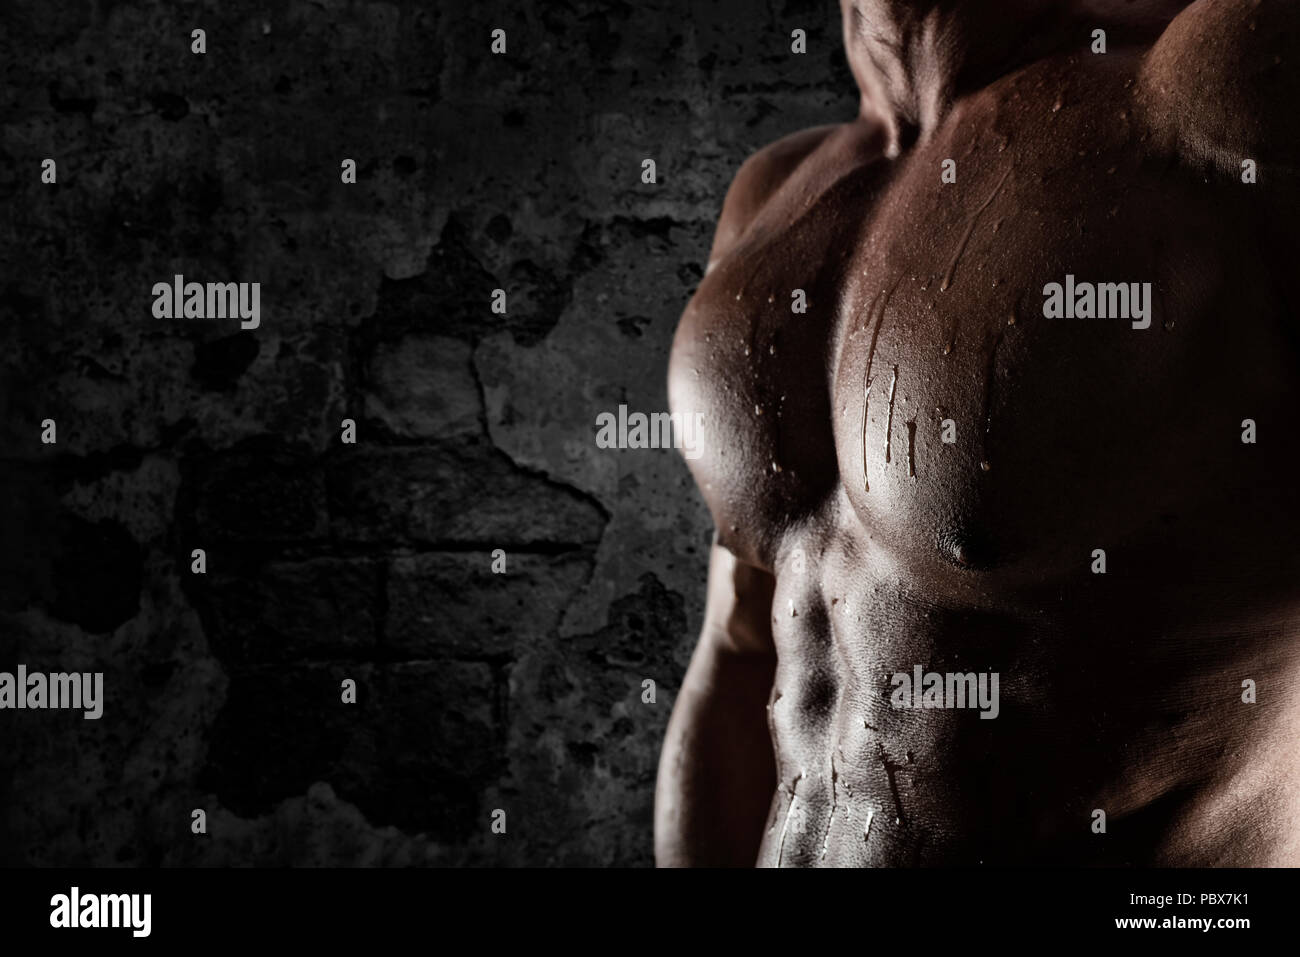 Muscular of a body building trainer man Stock Photo